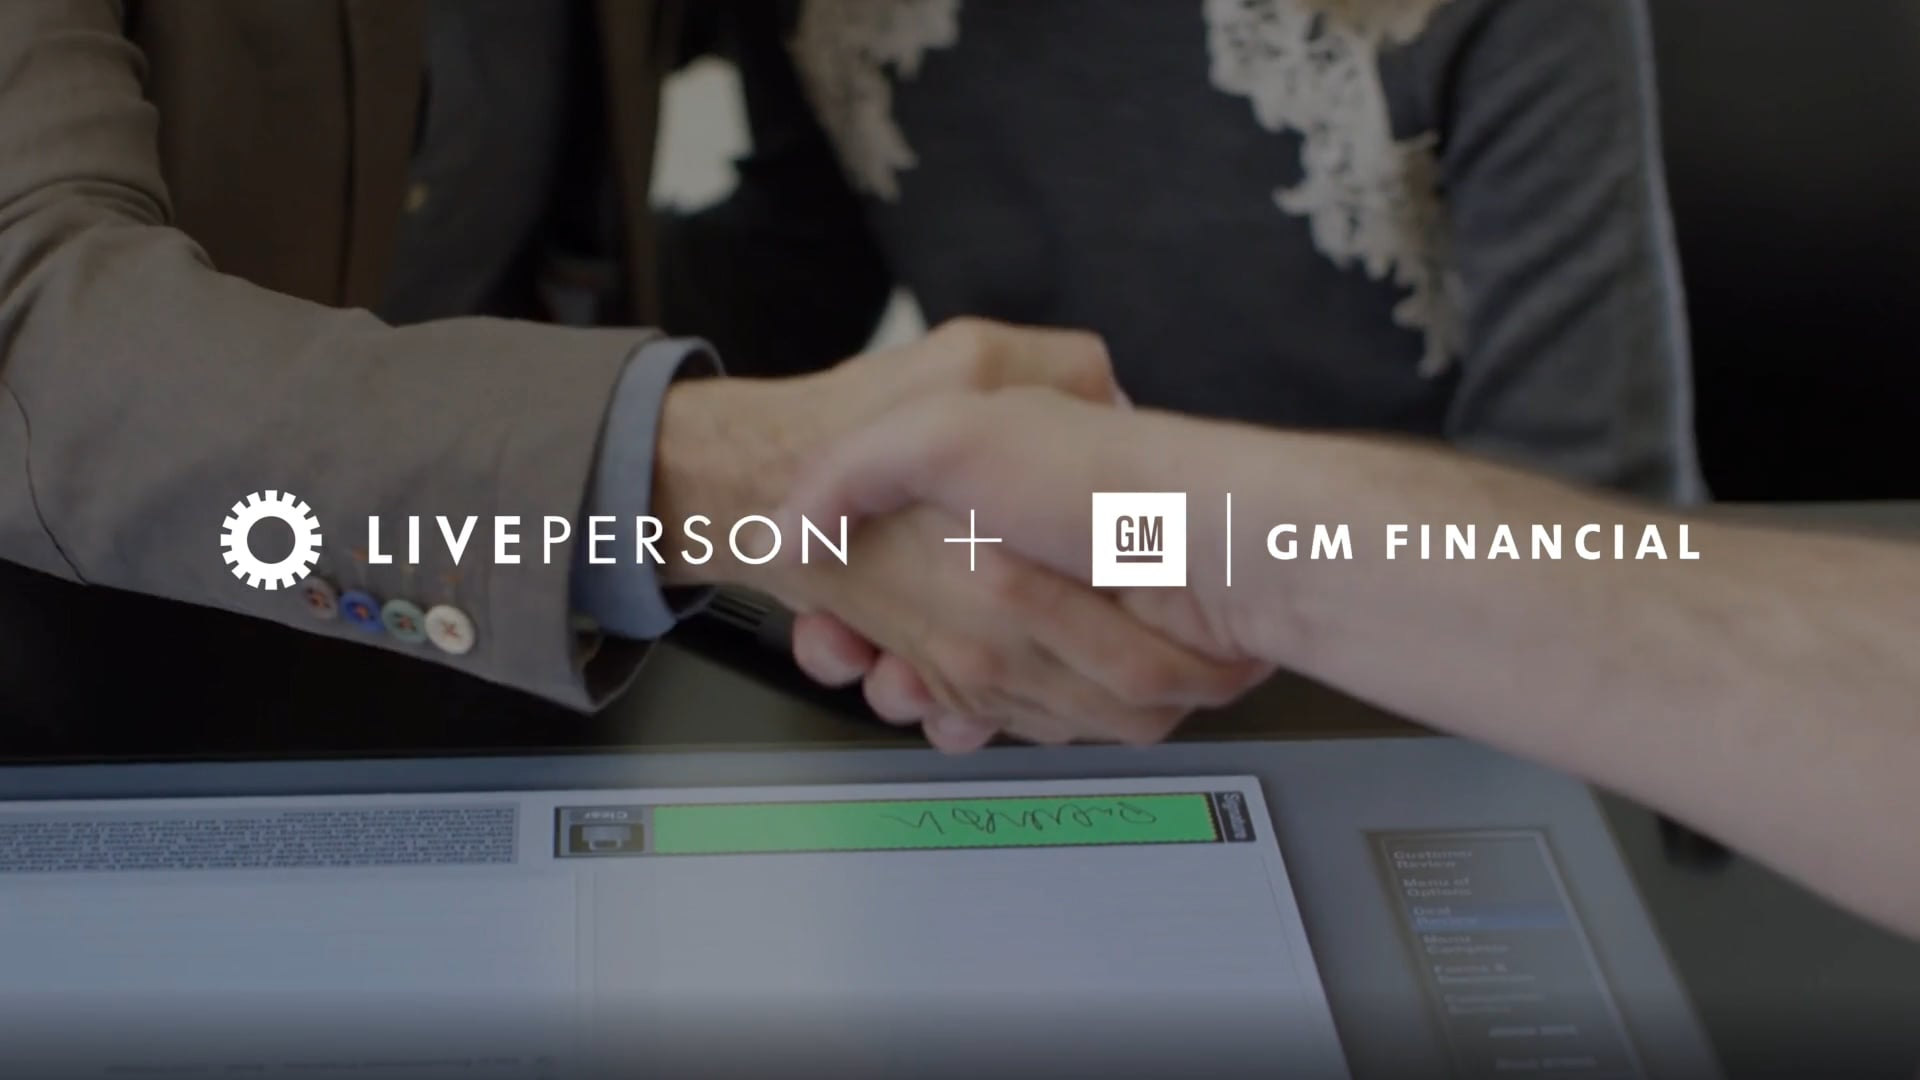 GM Financial x LivePerson